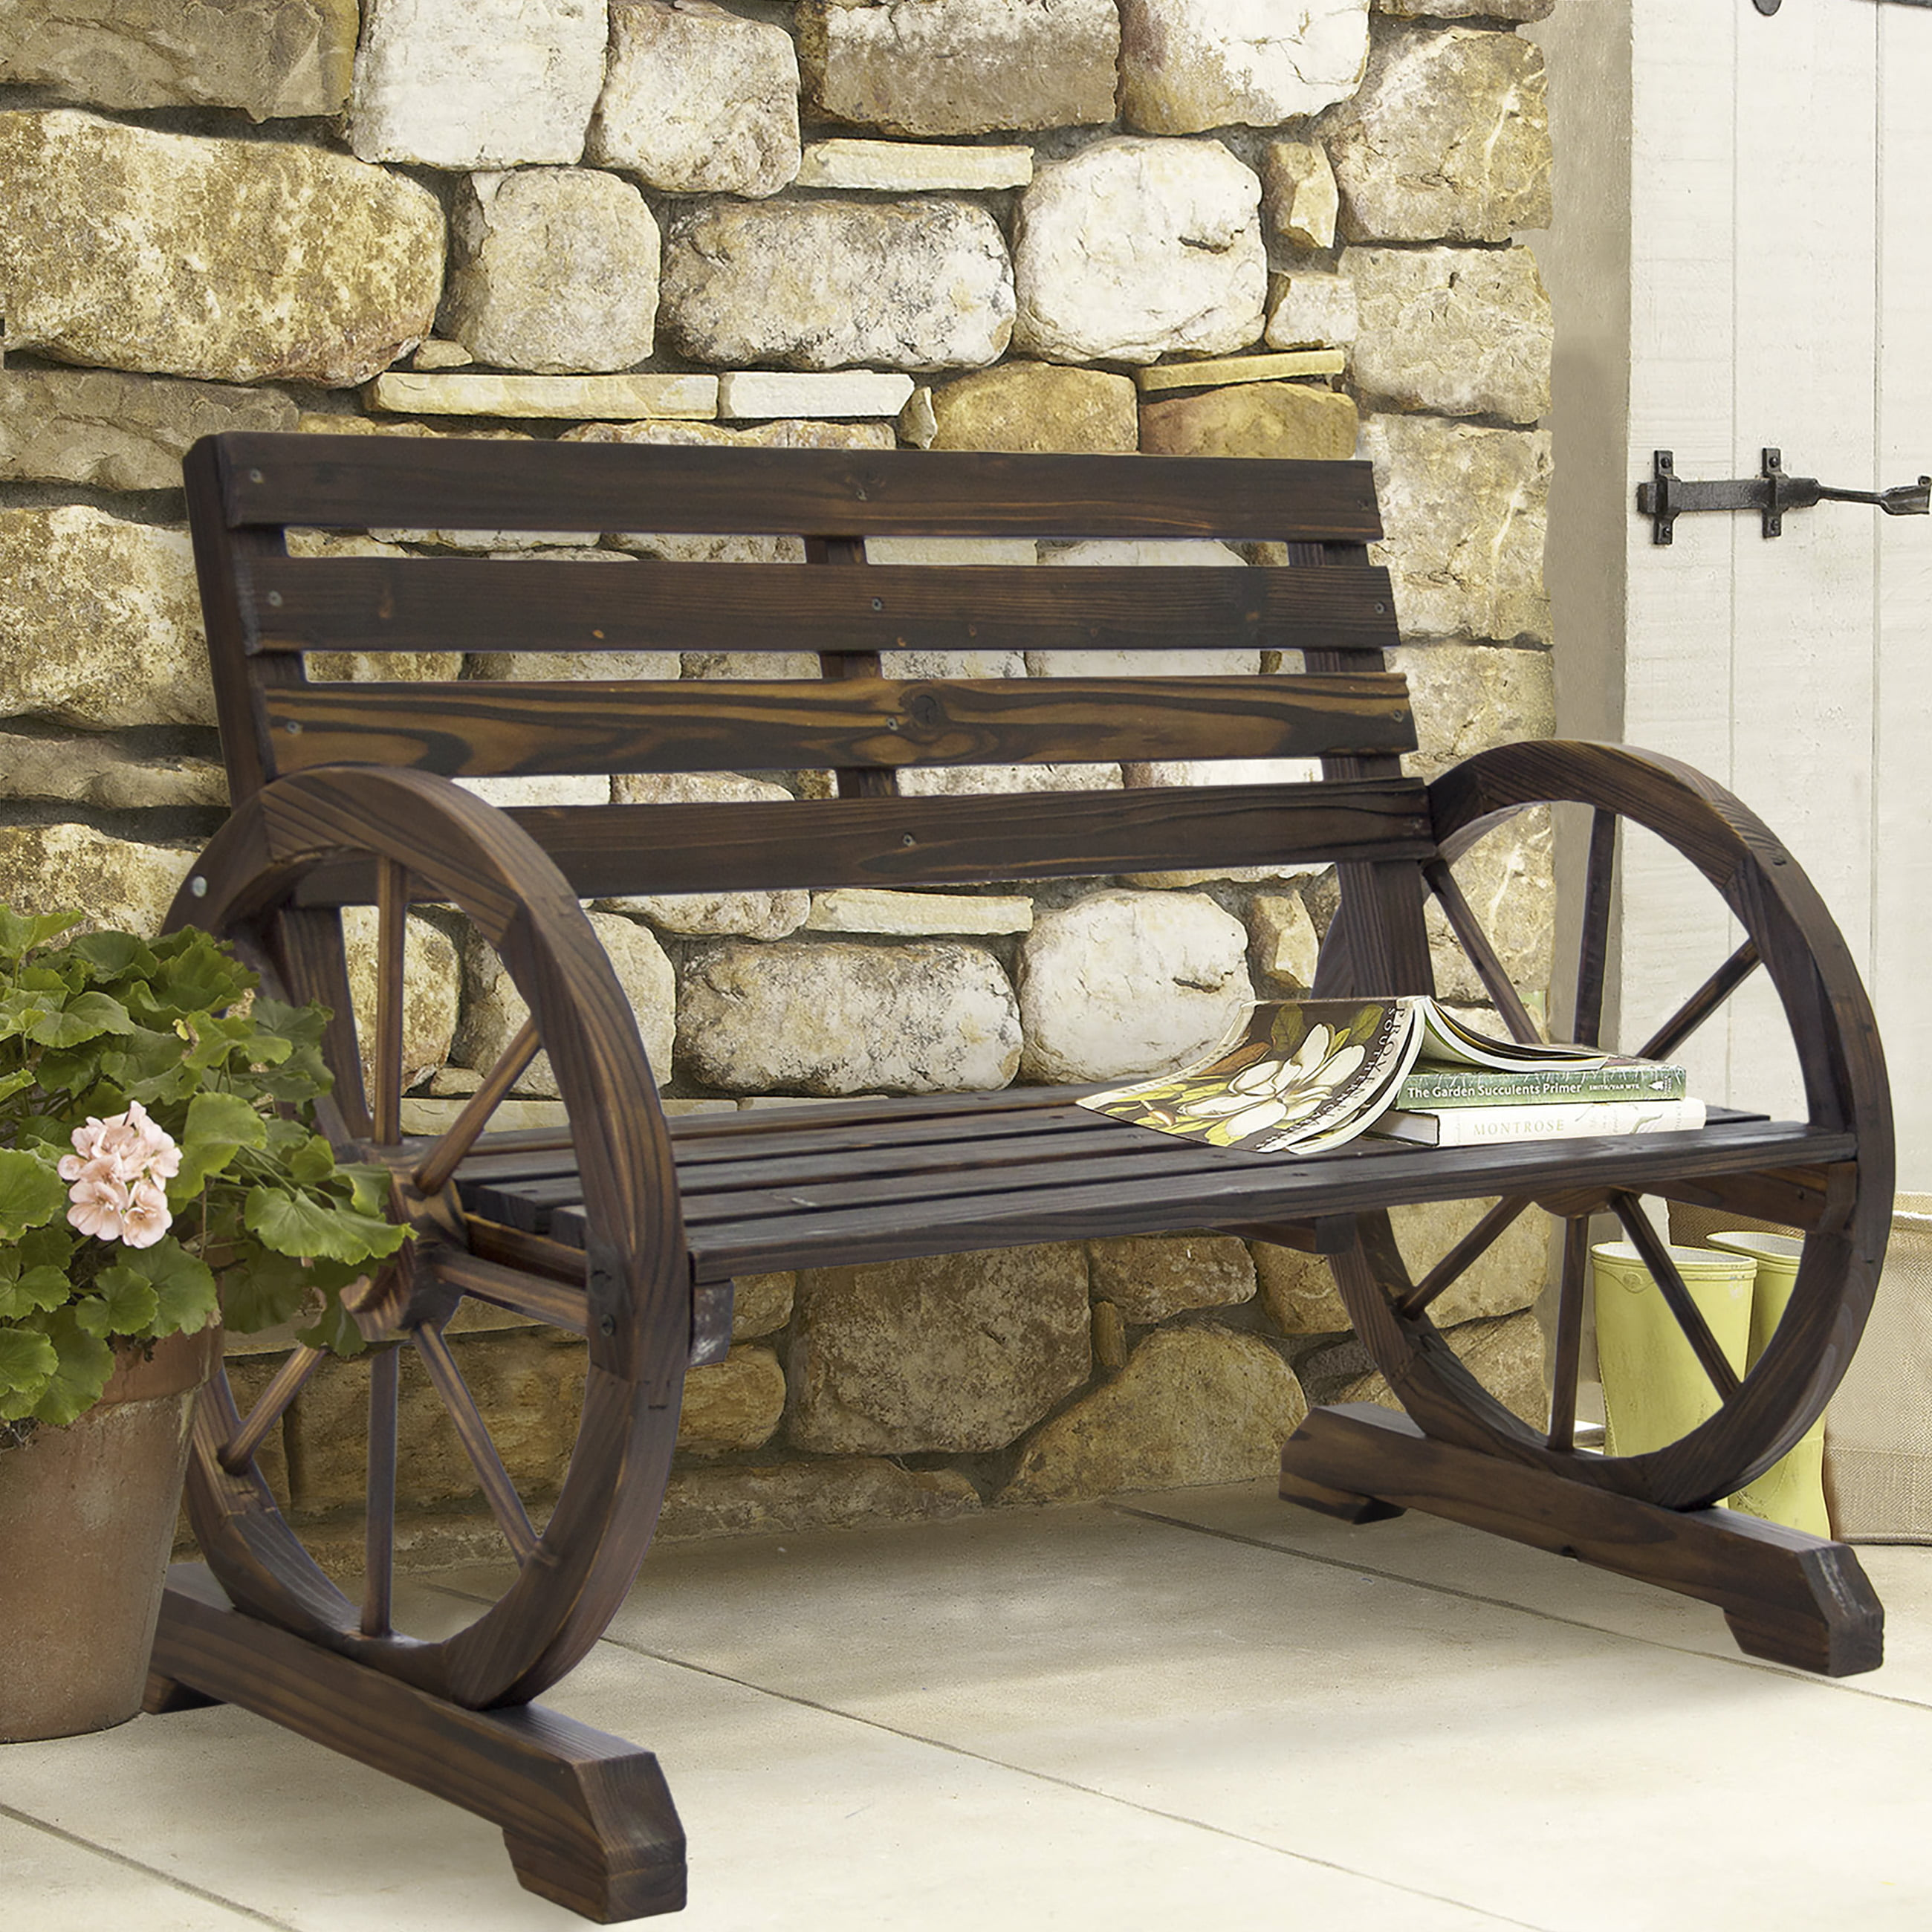 Pleasant Bcp Wooden Rustic Wagon Wheel Bench For Patio Garden Evergreenethics Interior Chair Design Evergreenethicsorg